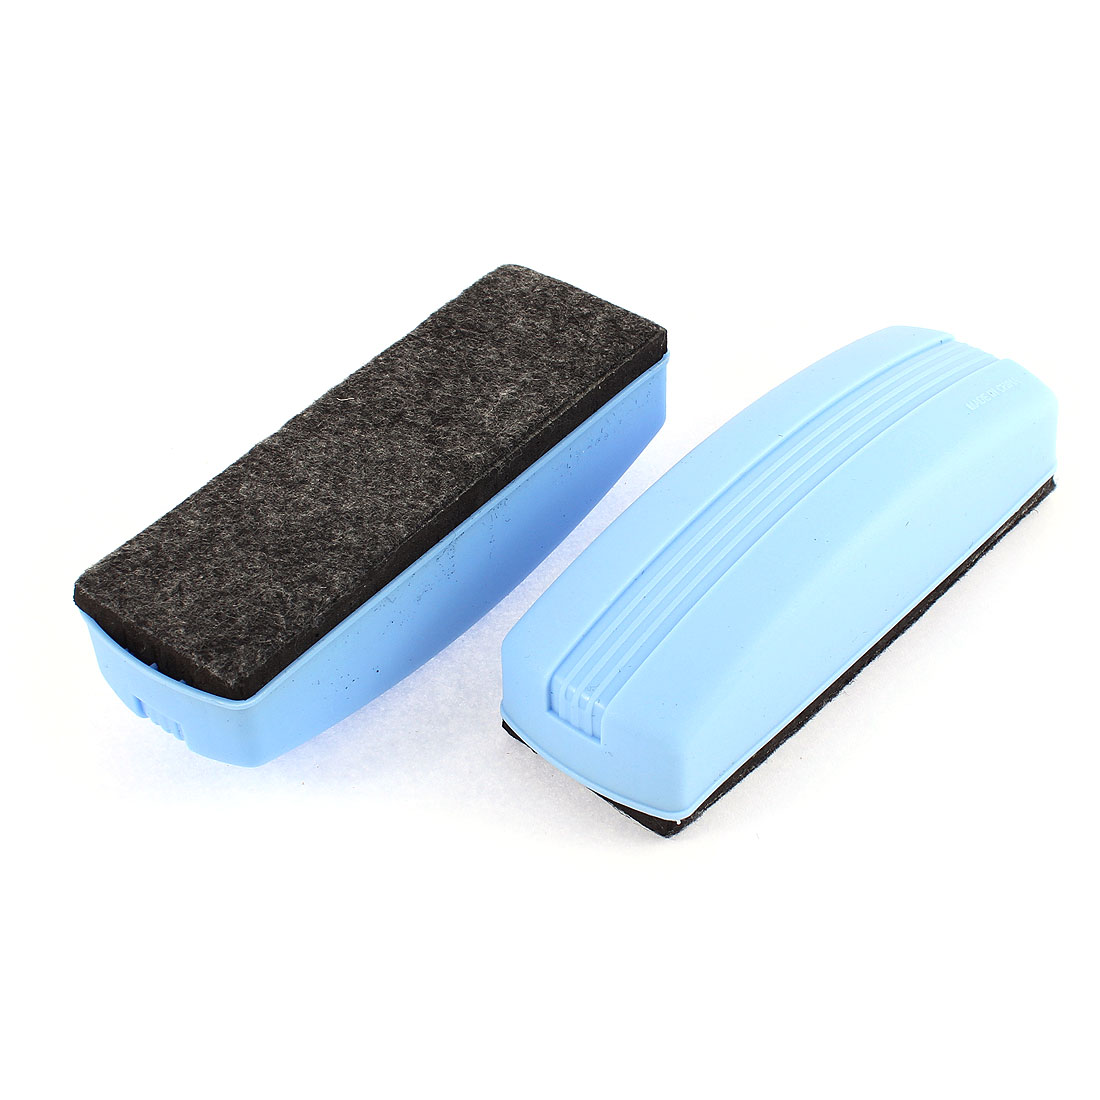 School Teaching Plastic Shell Magnetic Blackboard Eraser Blue Black 2 Pcs